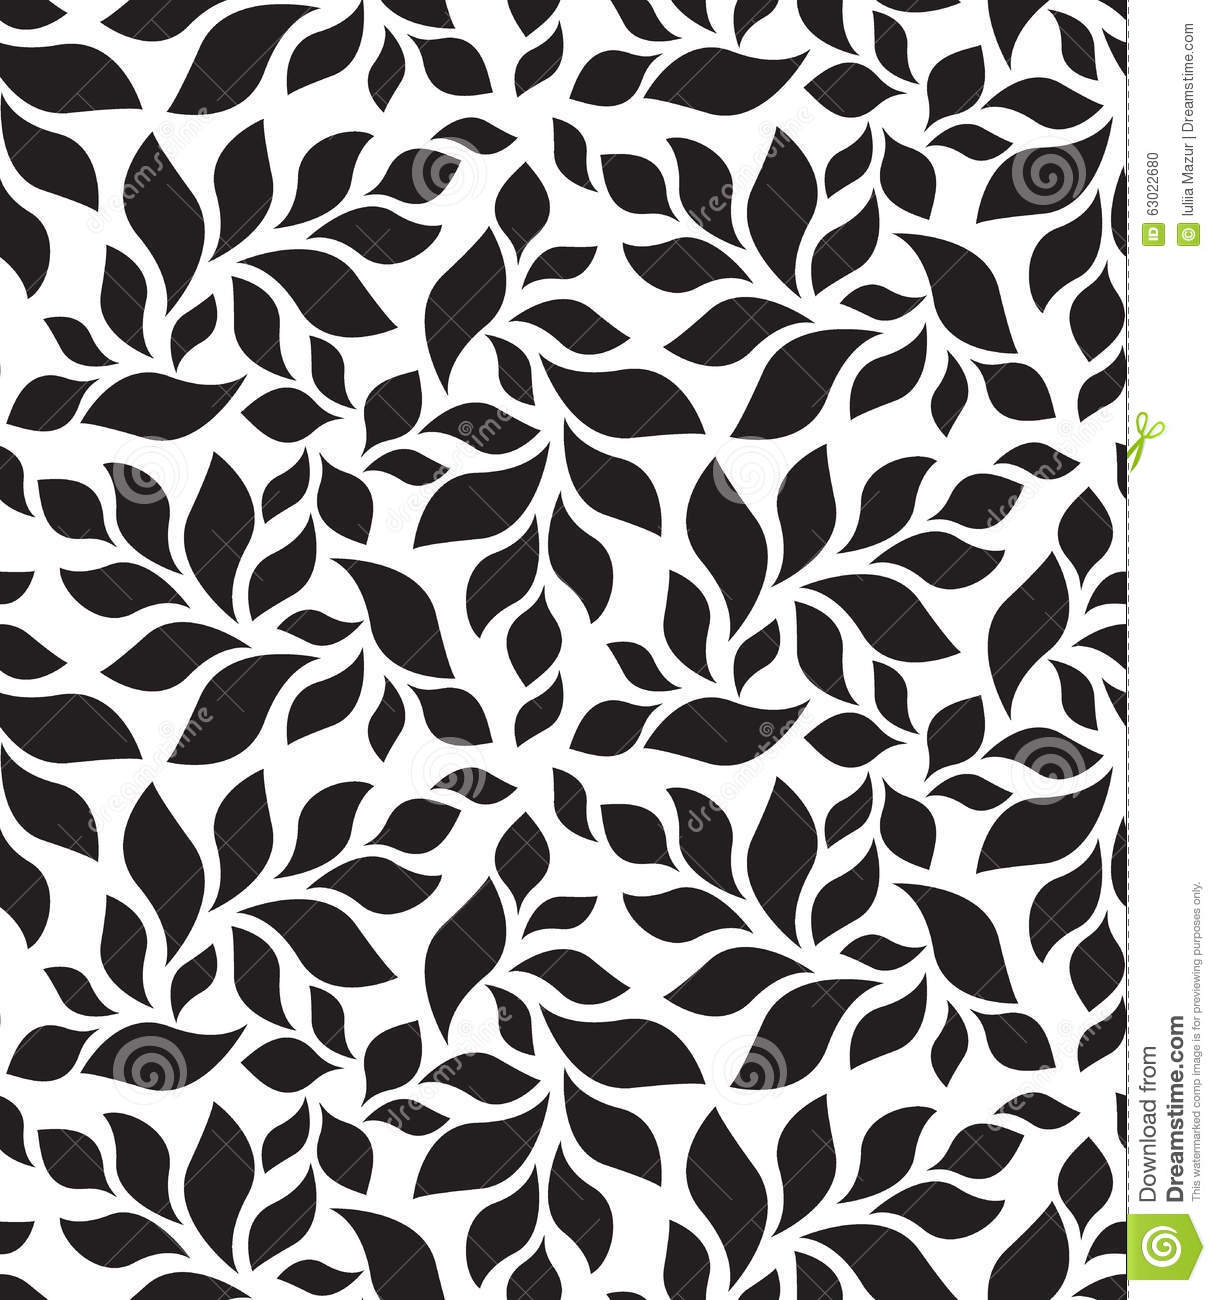 Aninimal Book: Vector Geometric Seamless Pattern. Modern Floral, Leaves ...